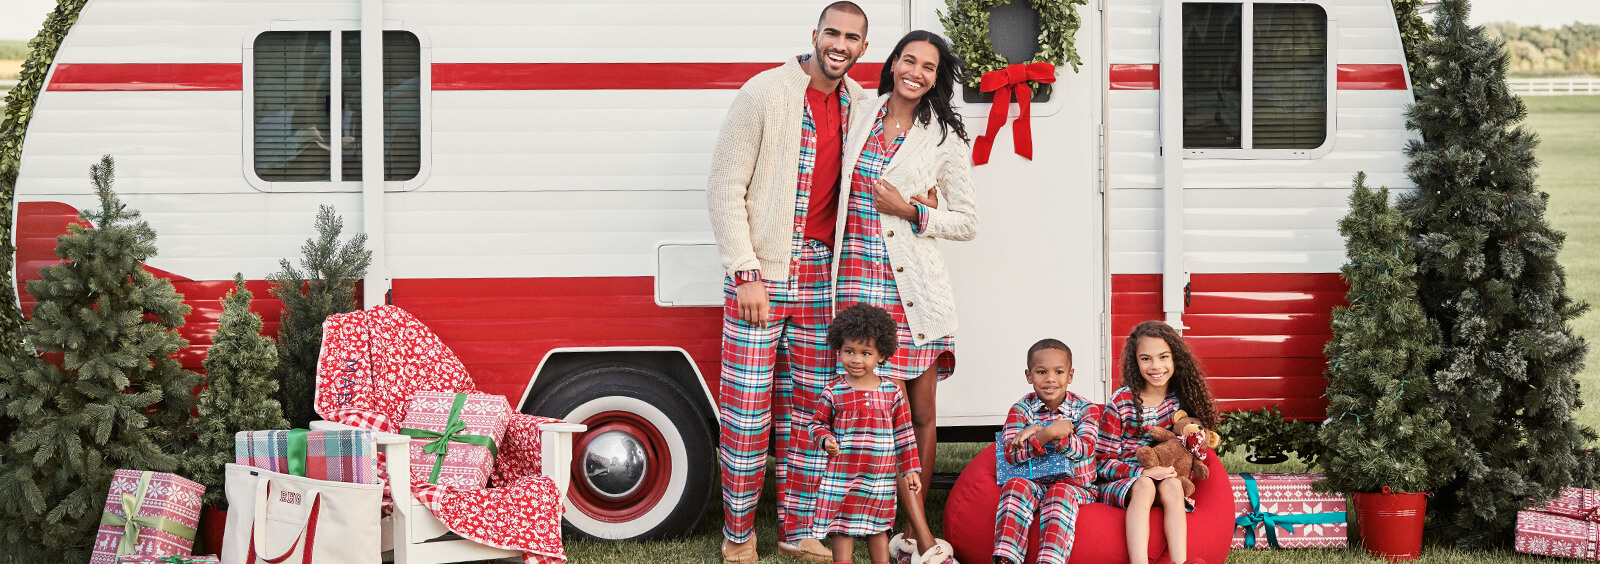 Cozy Pajama Sets Your Family Will Love to Show Off This Holiday Season